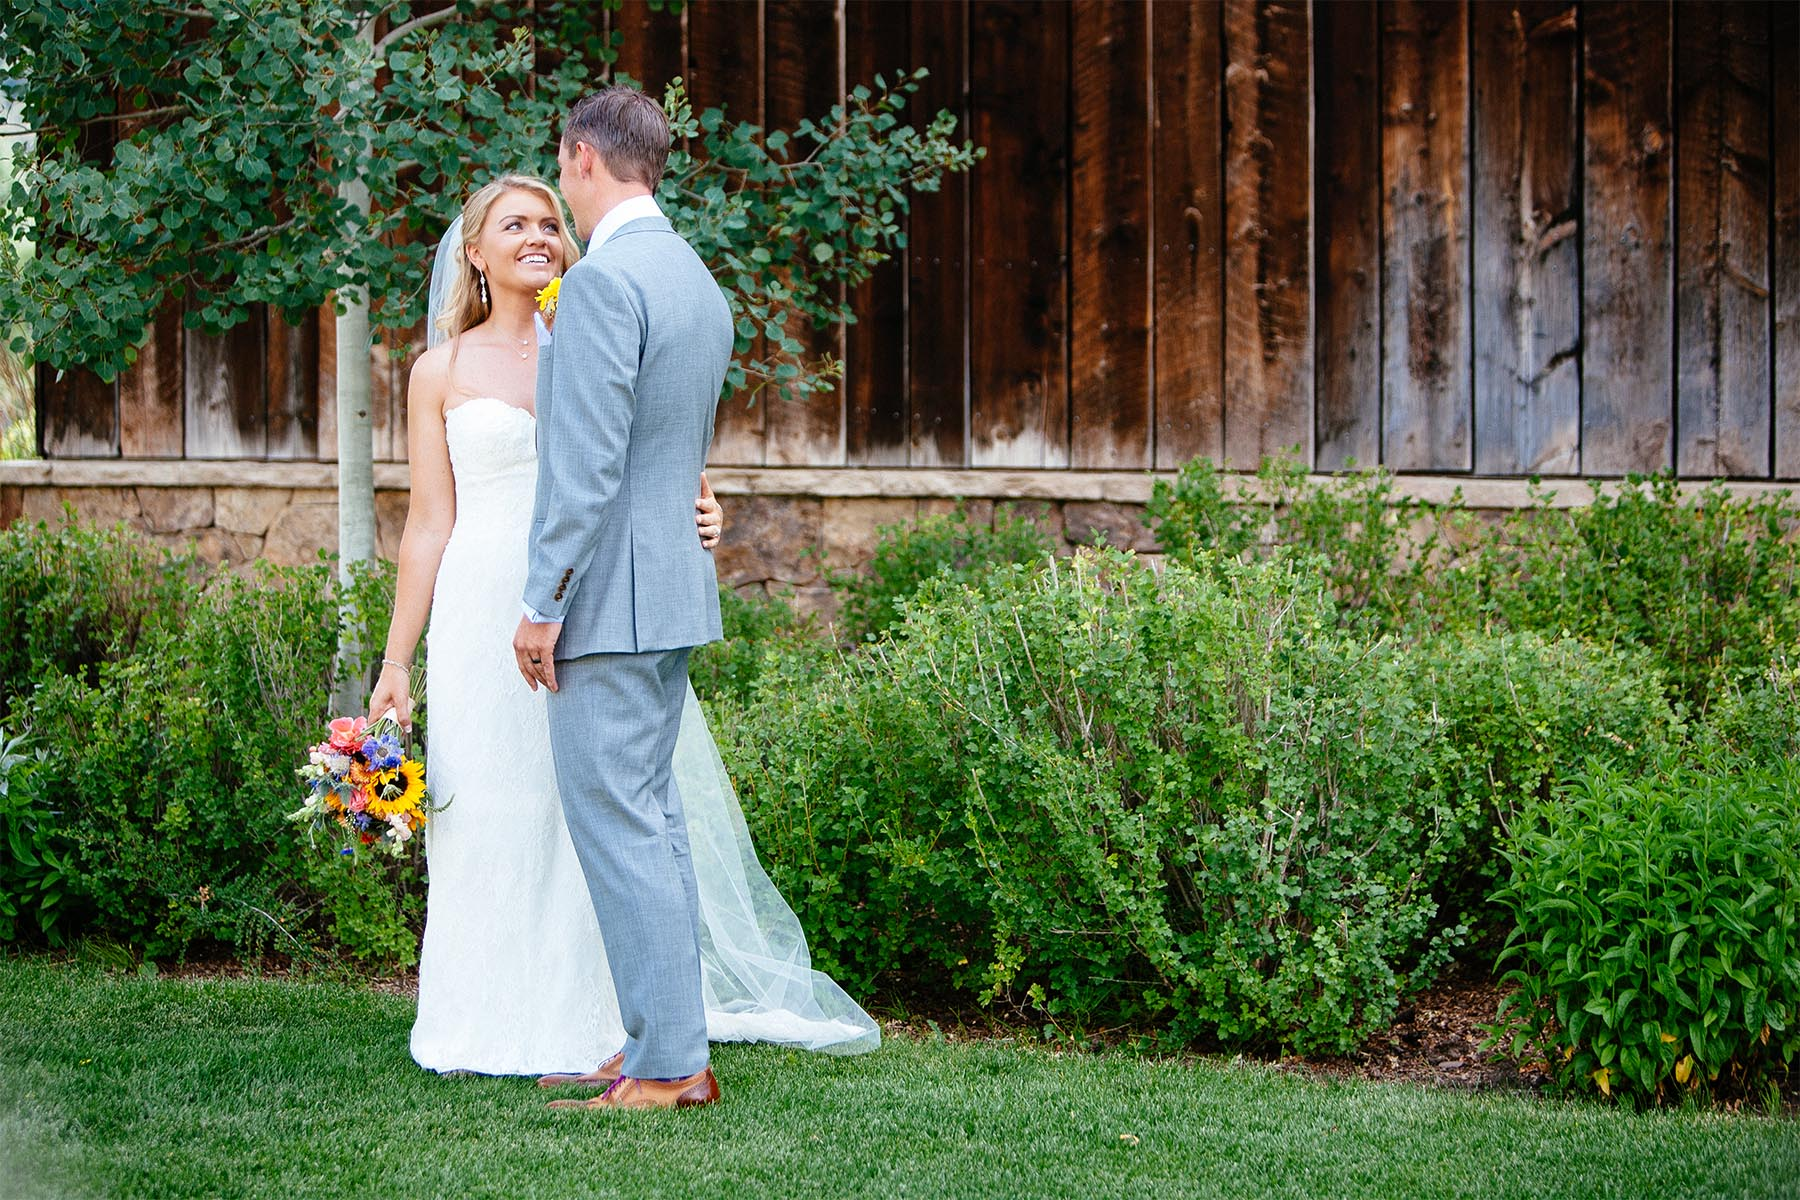 Wedding couple embraces in front of Old Thompson Barn.